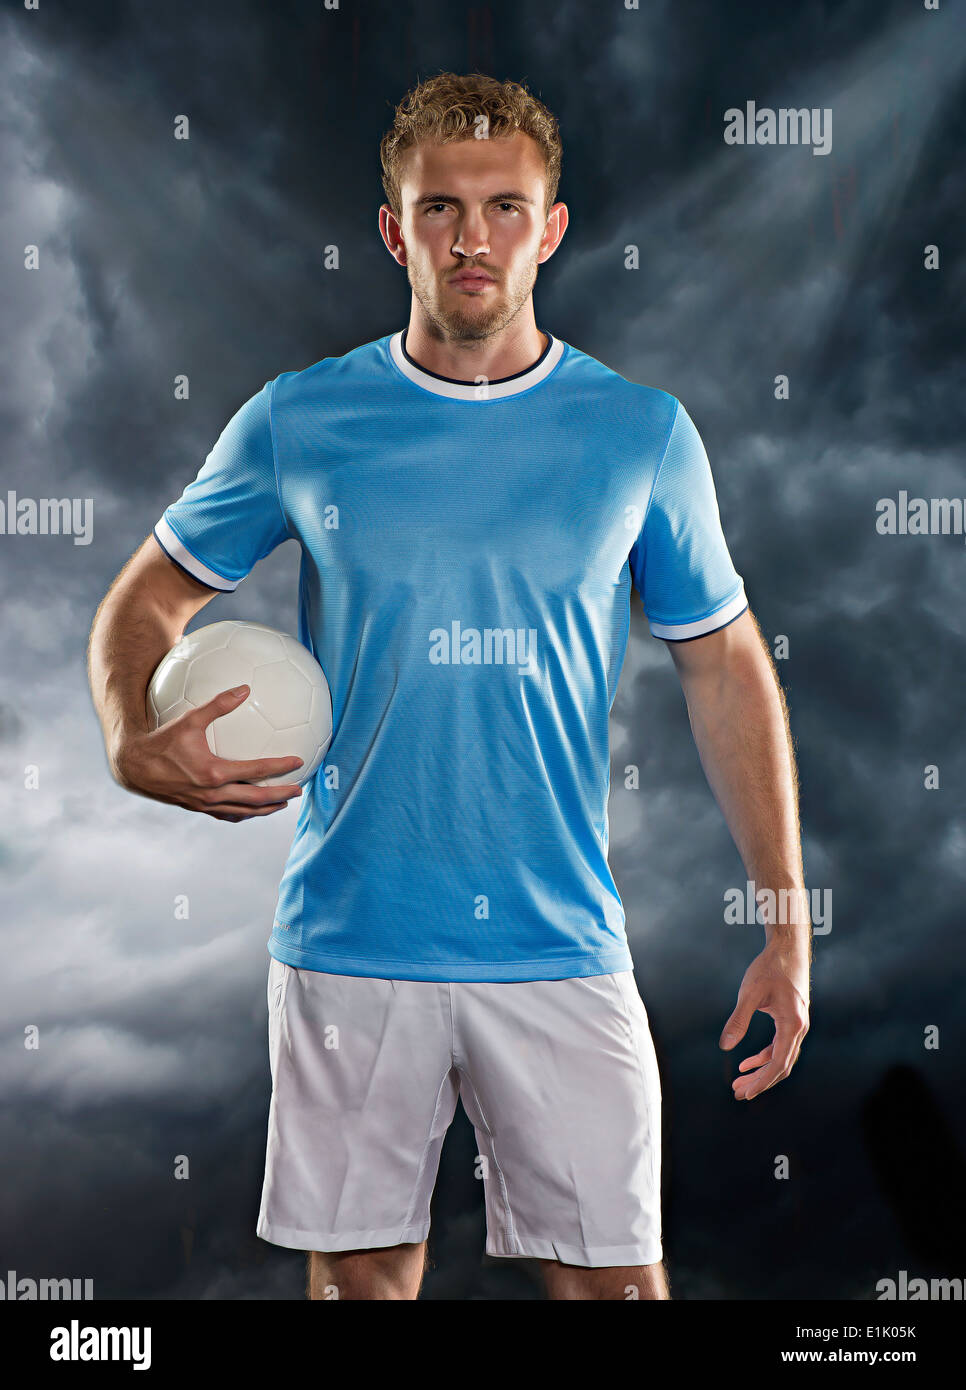 Professional football player poses against a storm cloud and stadium lights - Stock Image